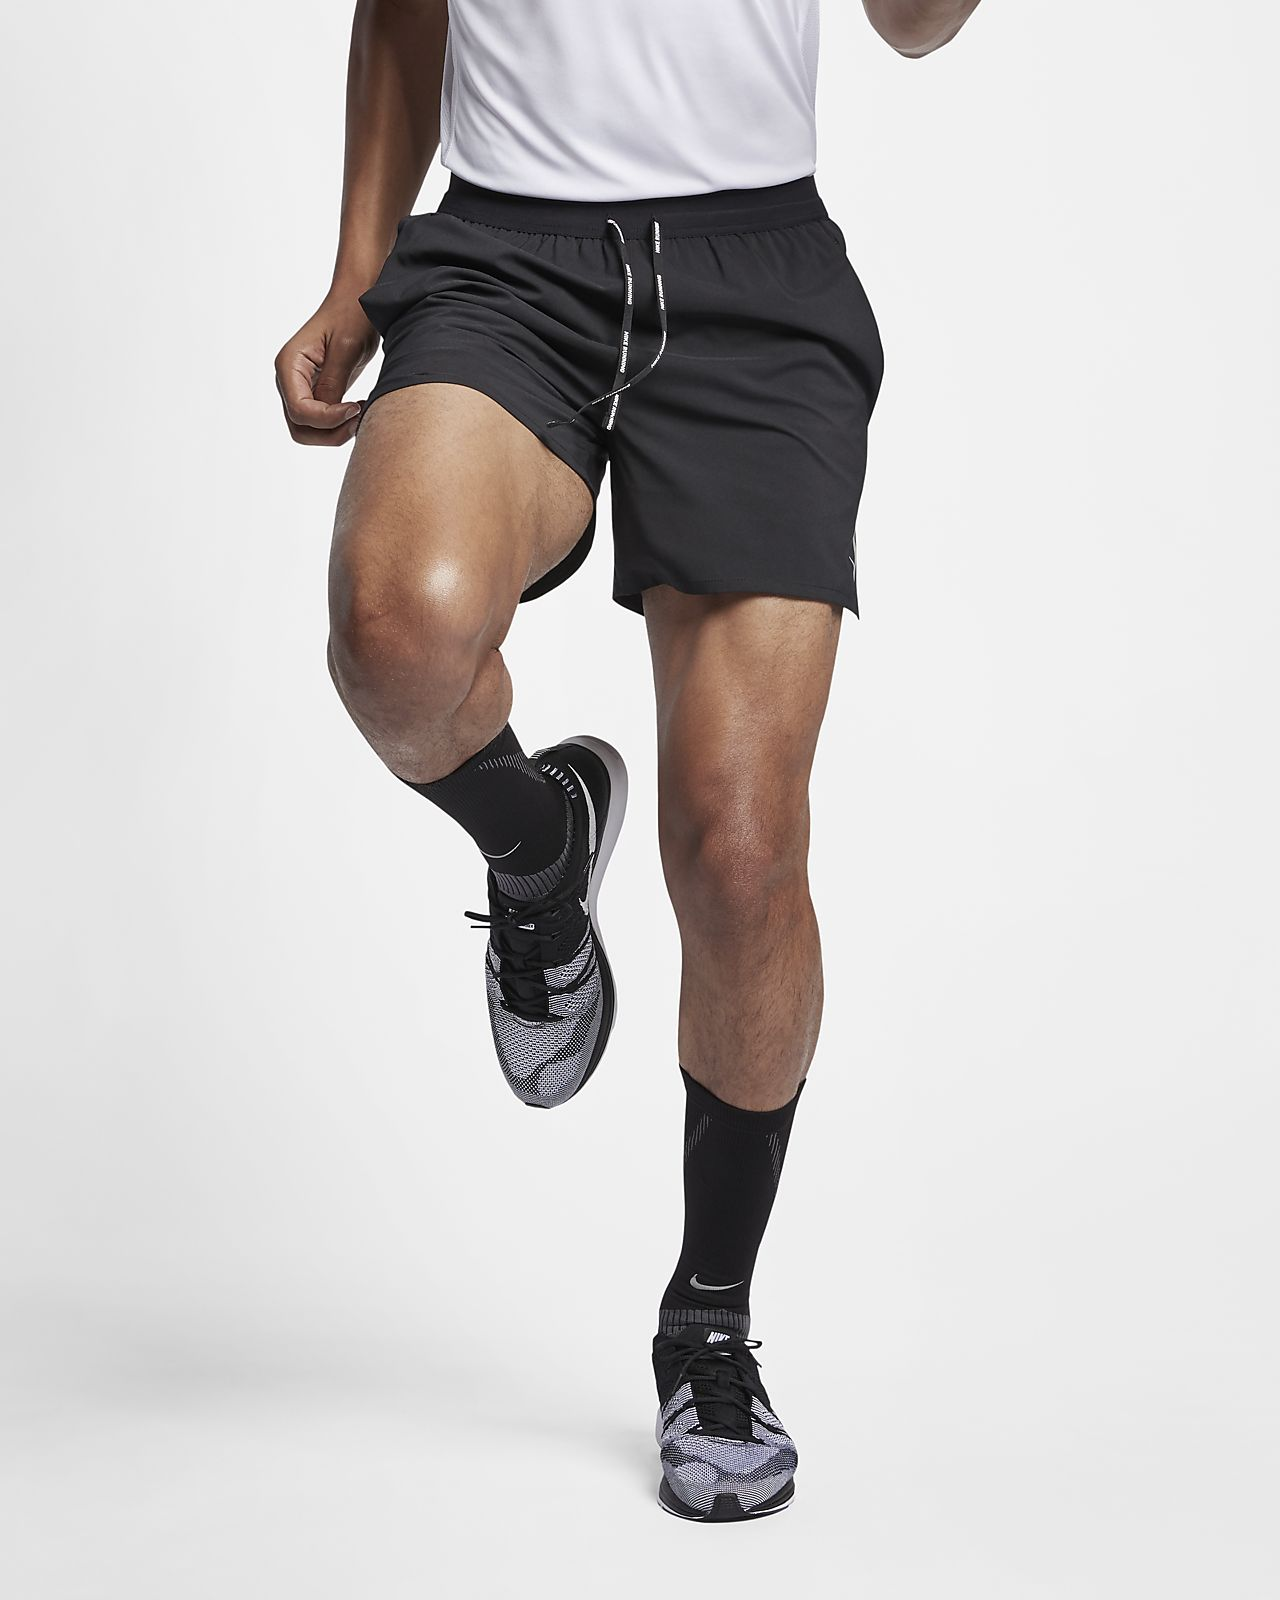 Nike Flex Stride Men's 13cm (approx.) Brief Lined Running Shorts